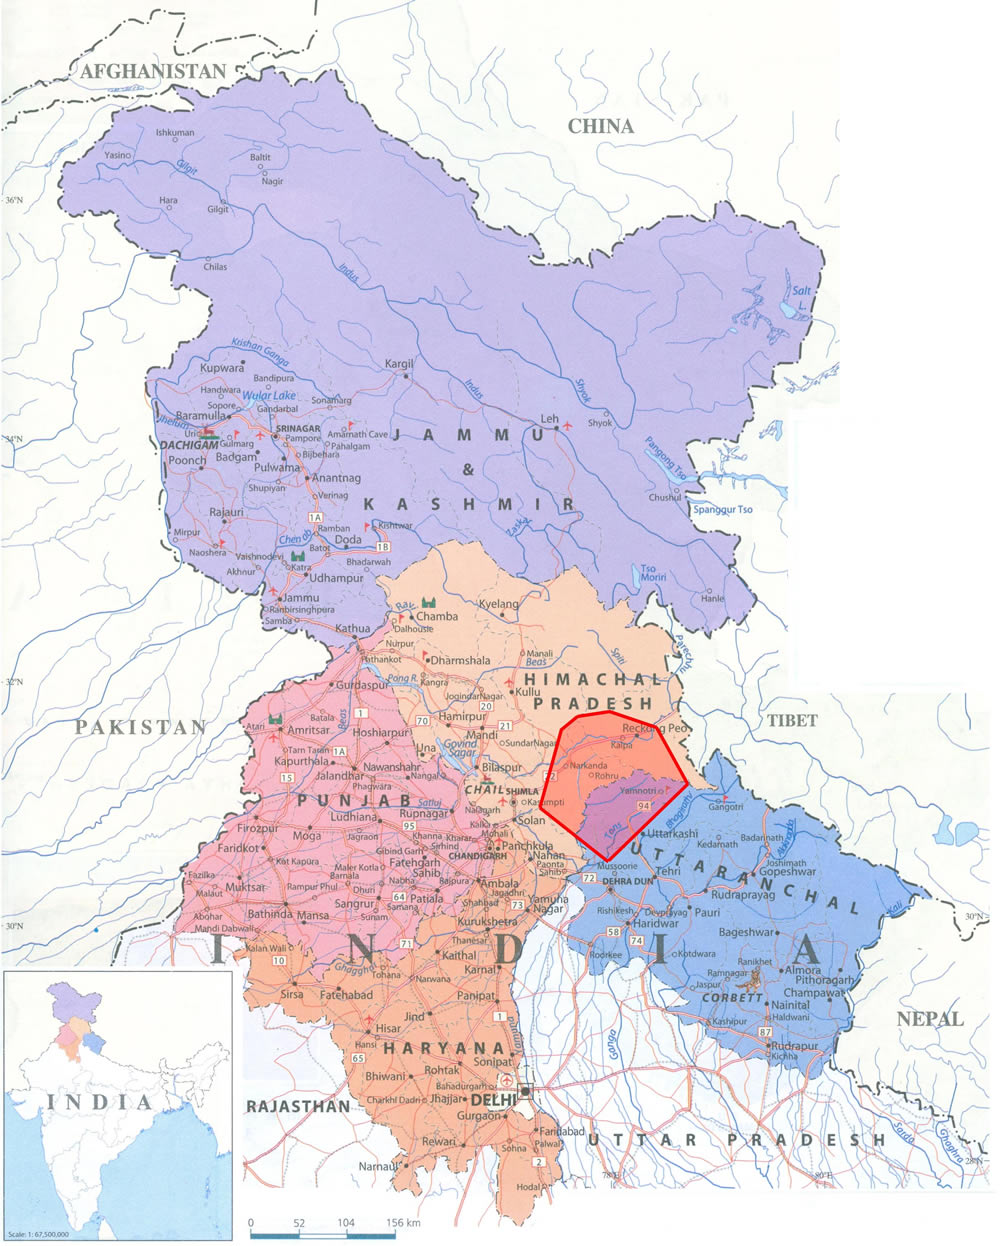 Map illustrating the respective region in Himalayan India where Koti Banal buildings are found.